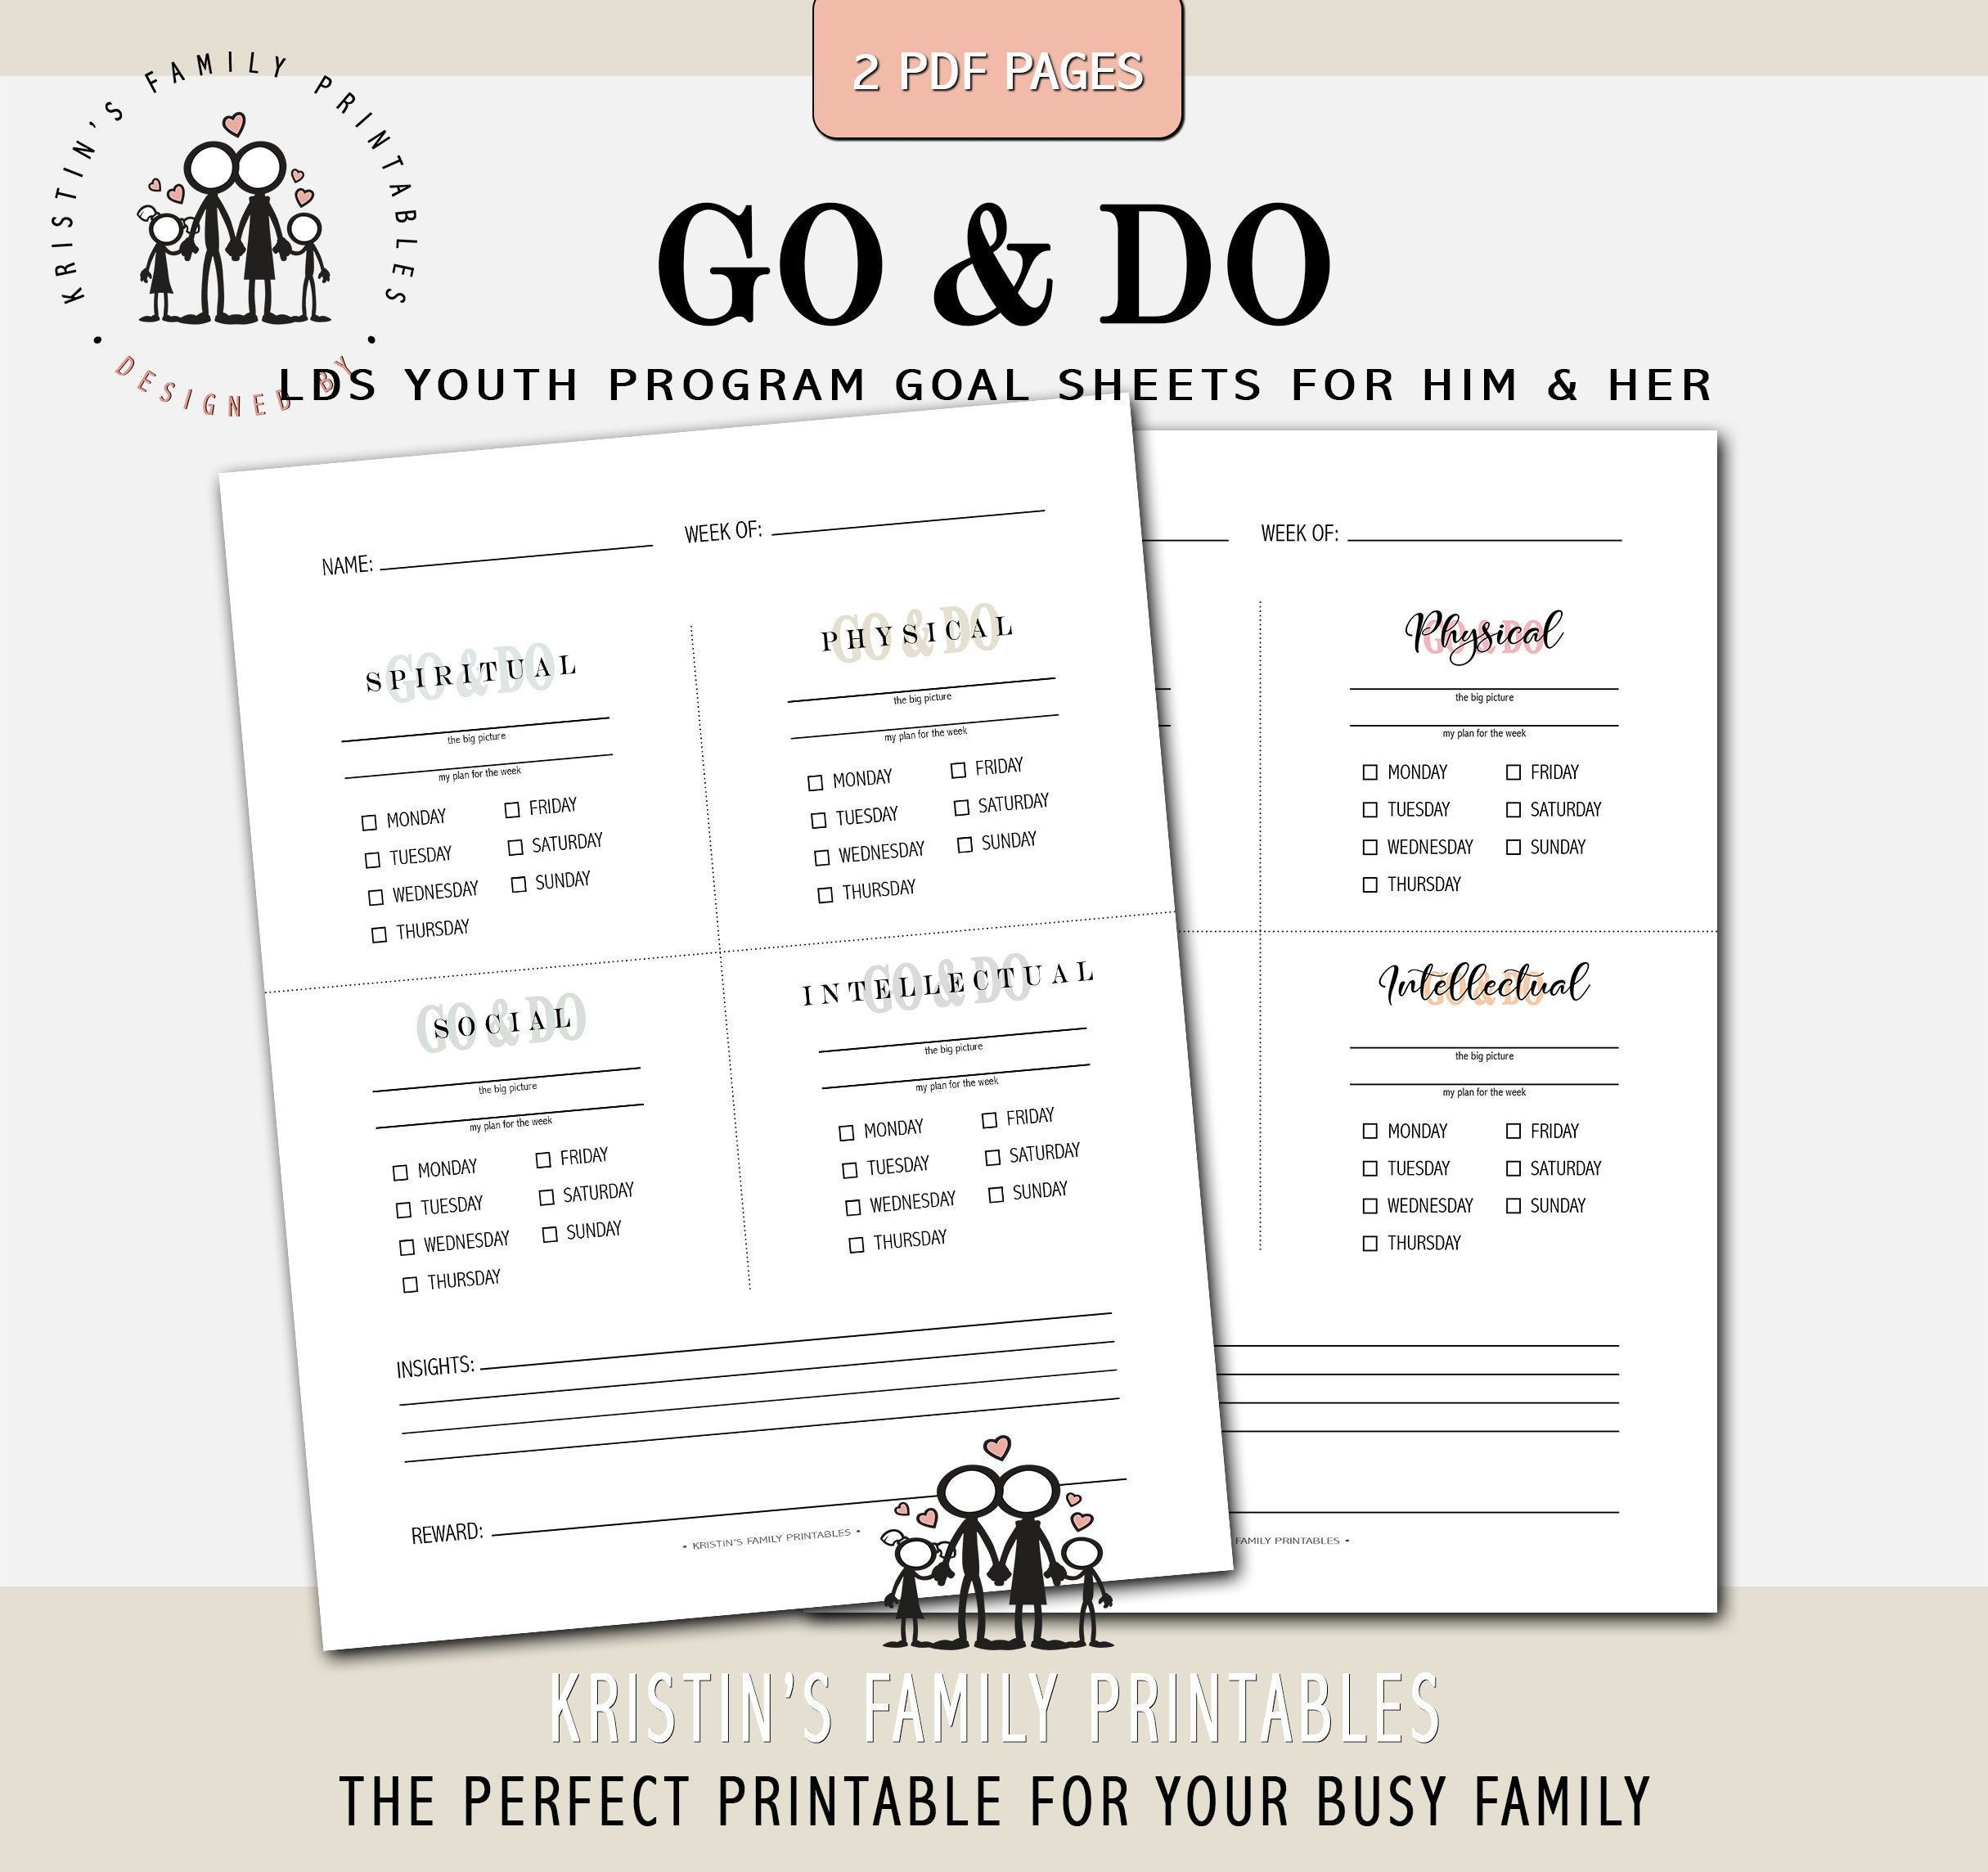 Go Amp Do Goals Sheet For Him And Her 2 Pages